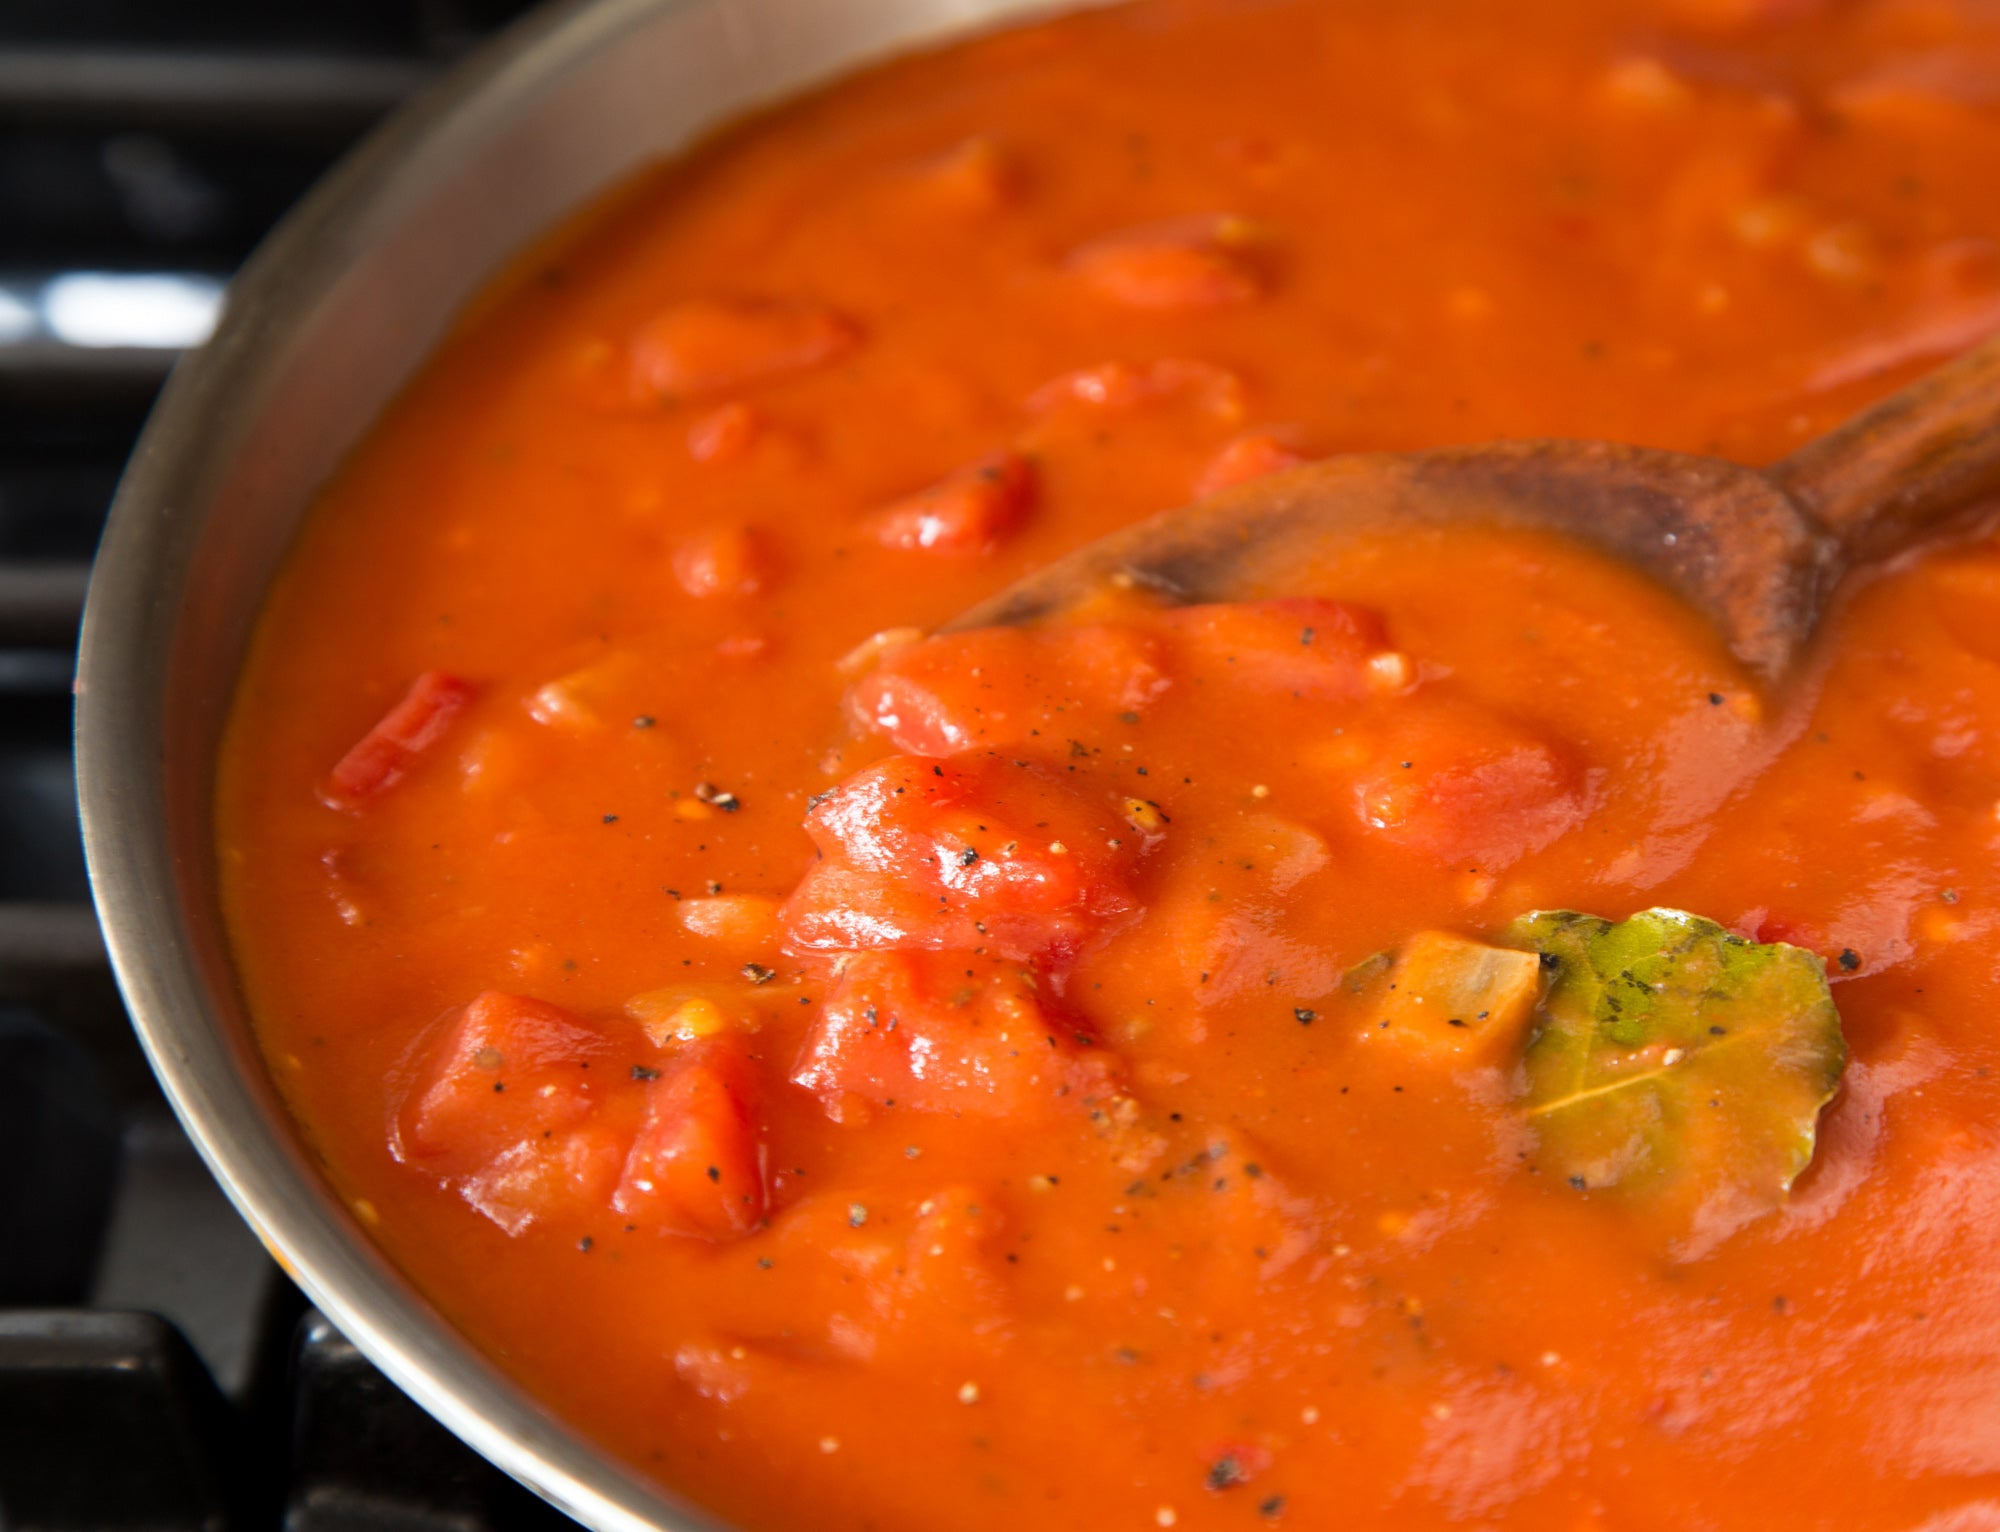 classic-southern-tomato-gravy-cooking-in-skillet-bay-leaves